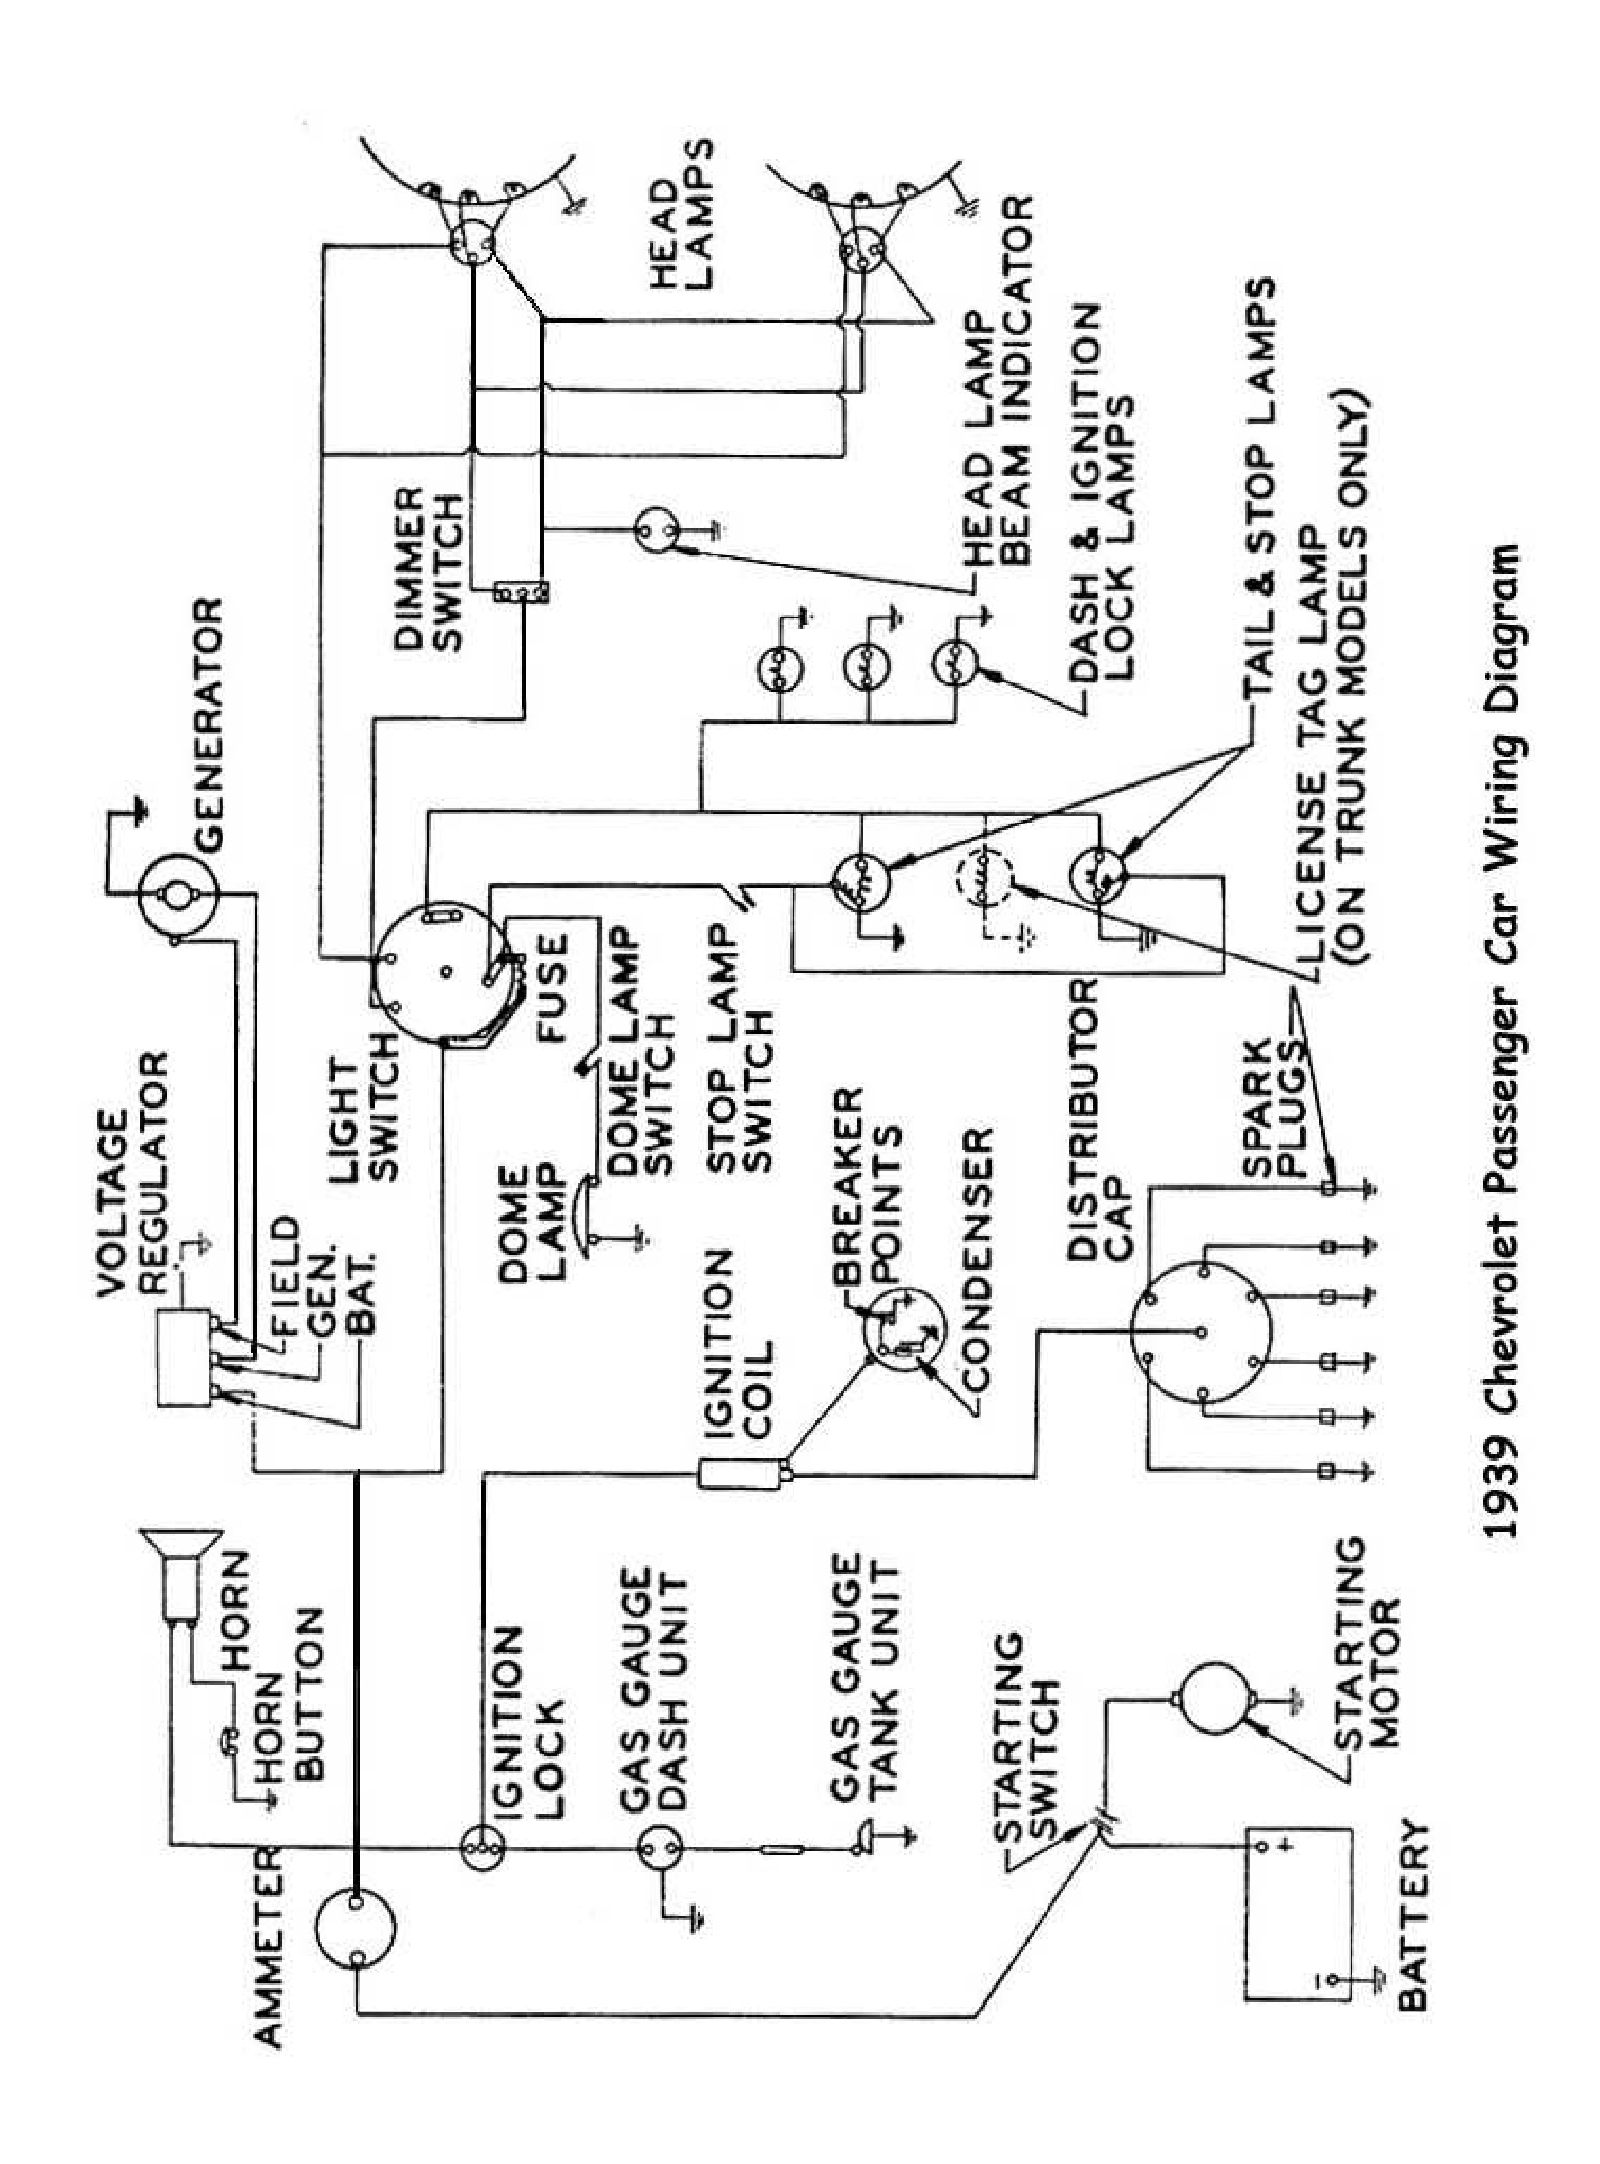 39car chevy wiring diagrams electrical wiring diagrams for cars at panicattacktreatment.co